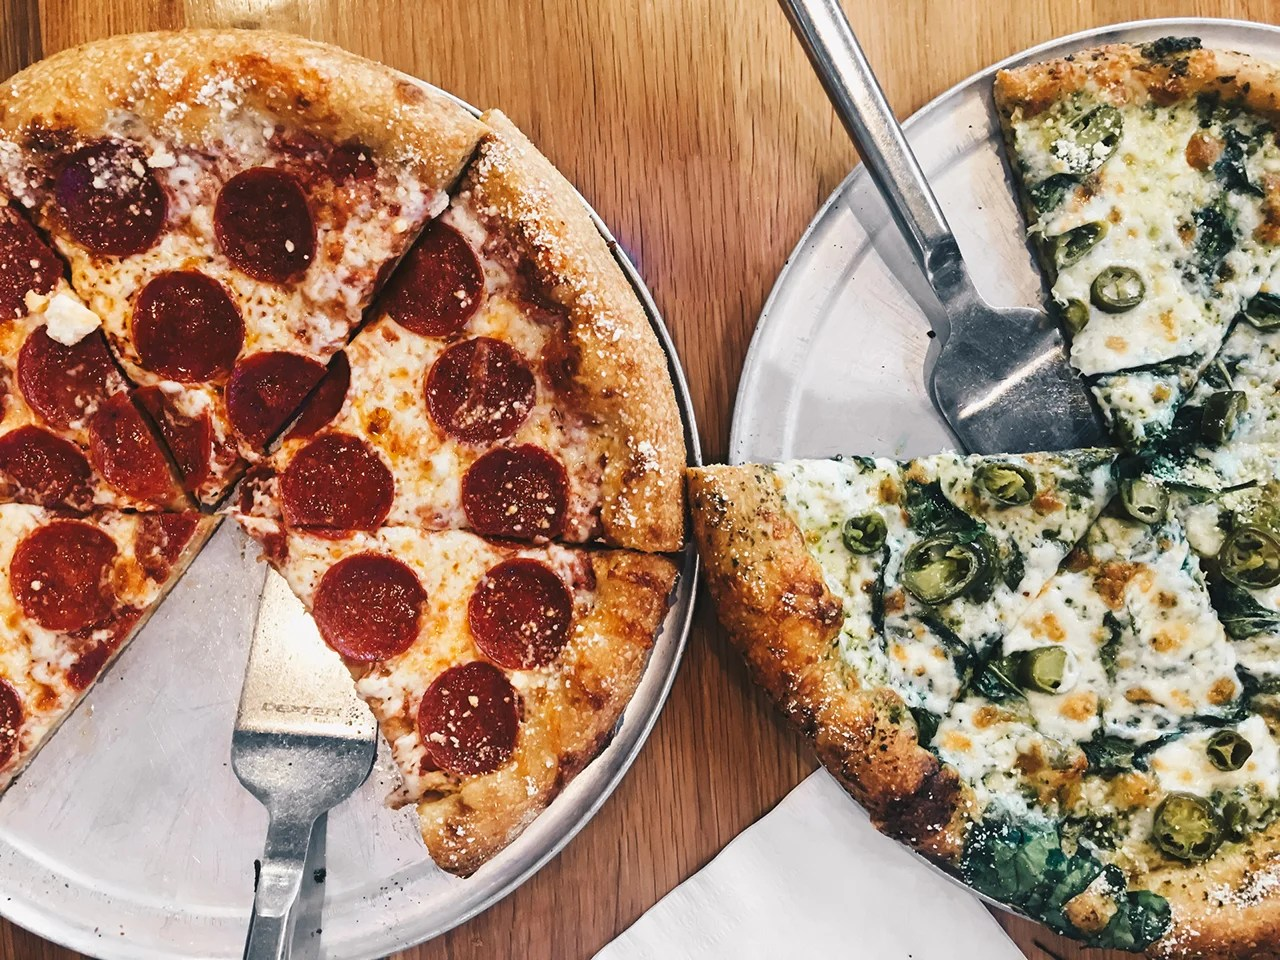 TripAdvisor Announced the Top 10 Pizza Restaurants and Everyone Is Freaking Out